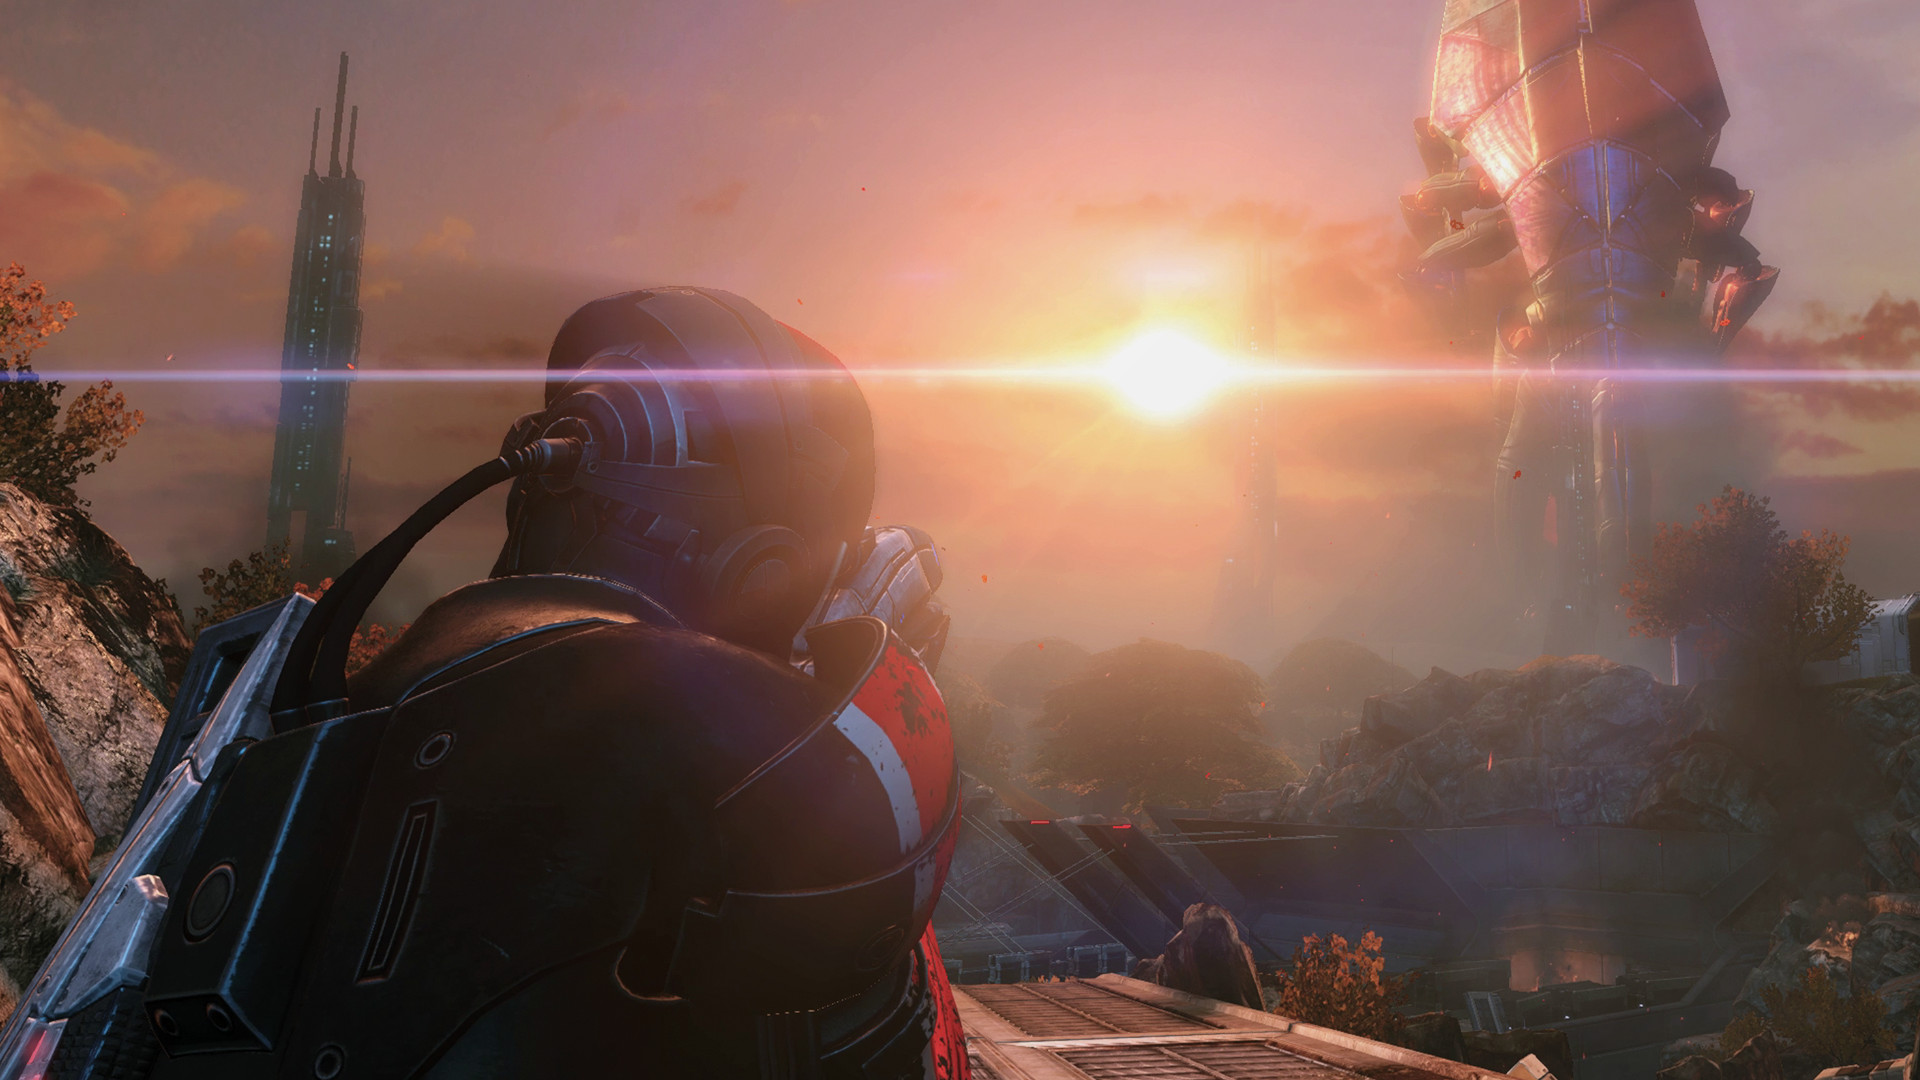 Mass Effect 1's Legendary Edition improves the Mako, shooting, AI, and more